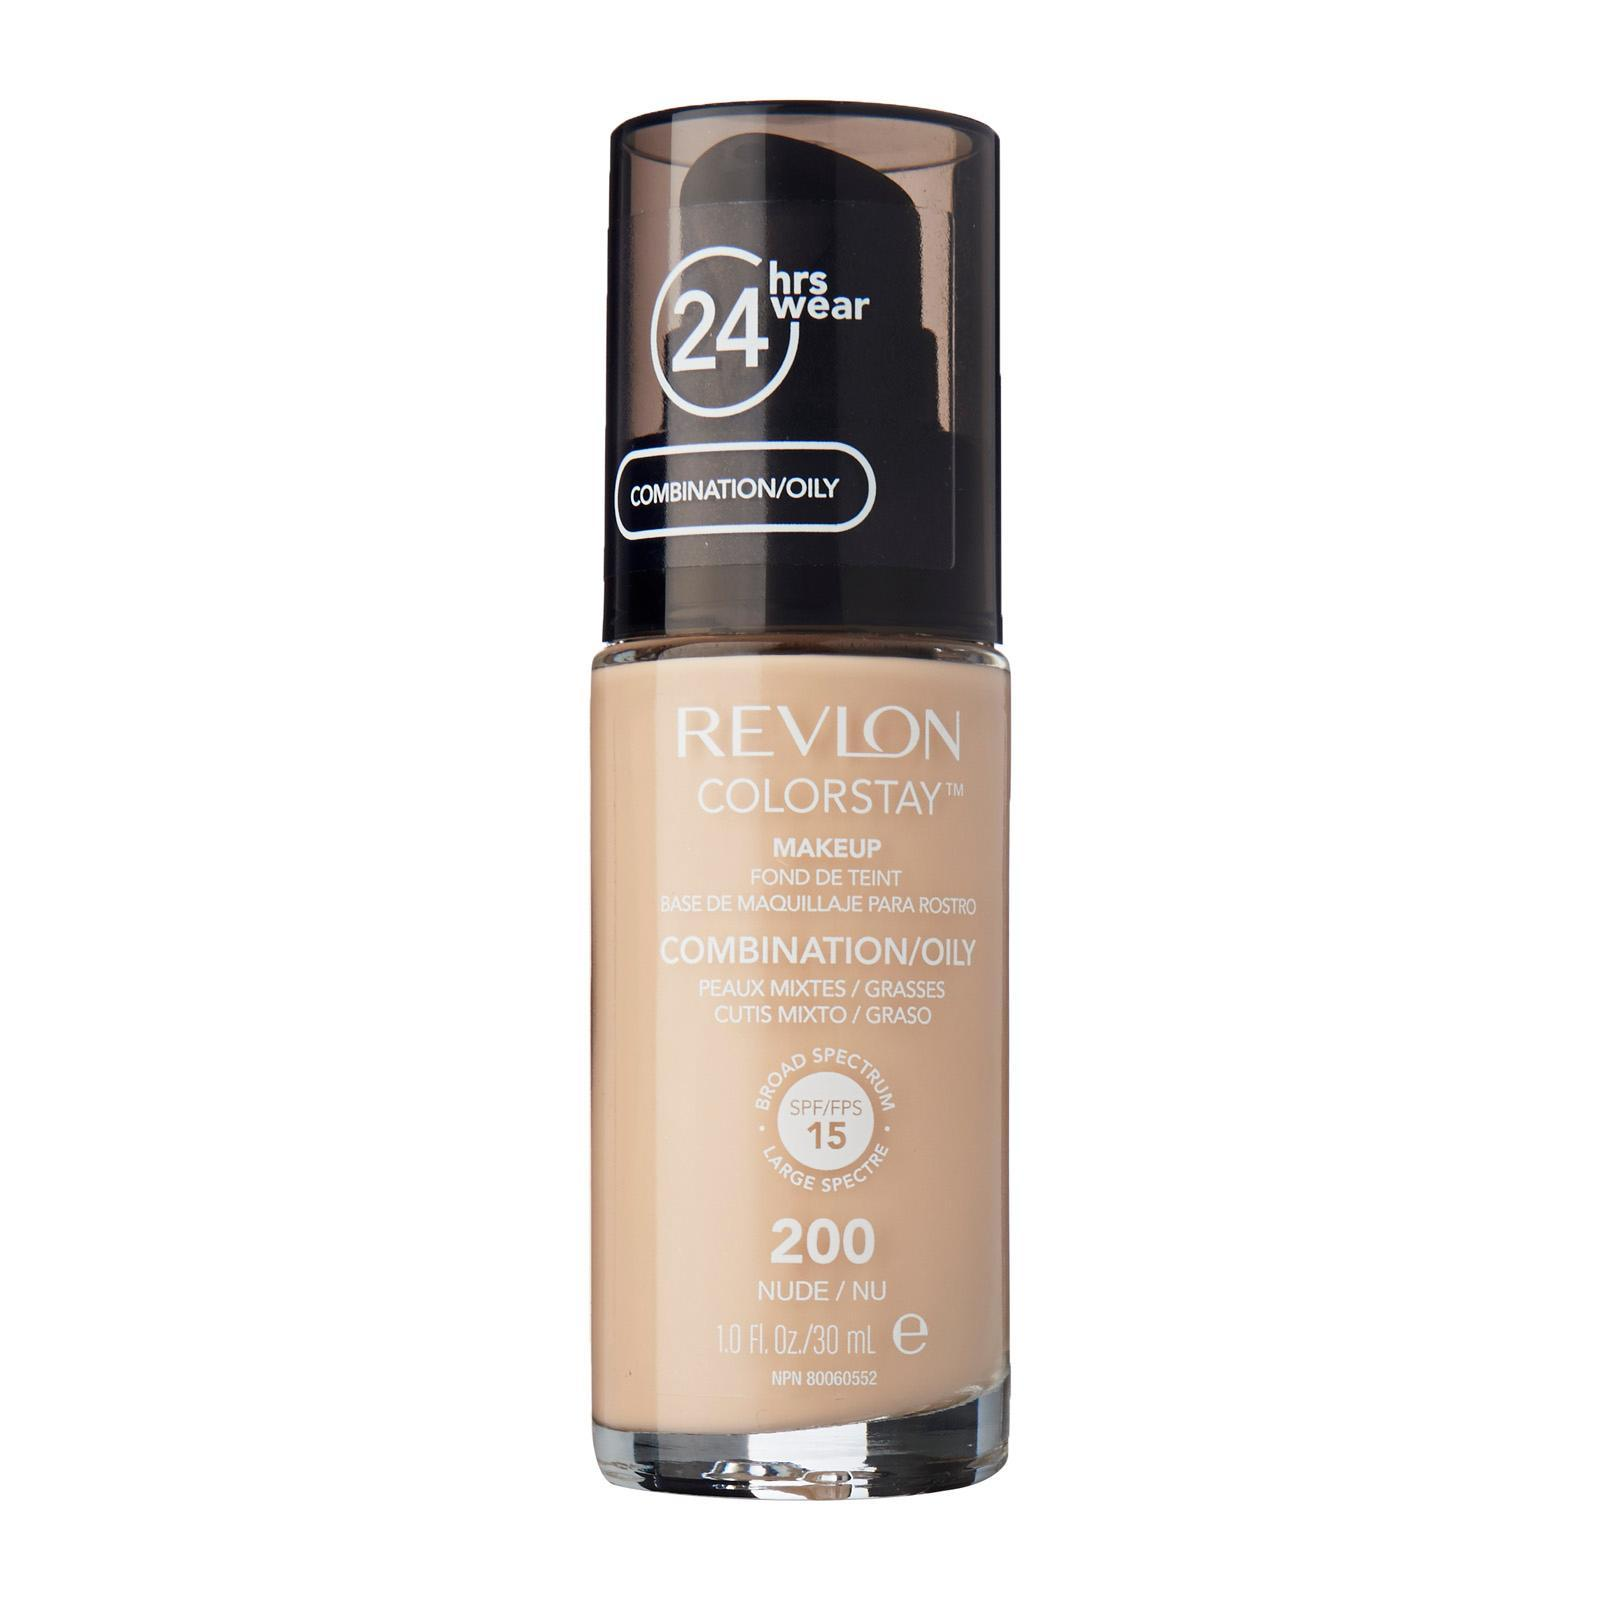 Revlon ColorStay Makeup for Combination/Oily Skin 200 Nude